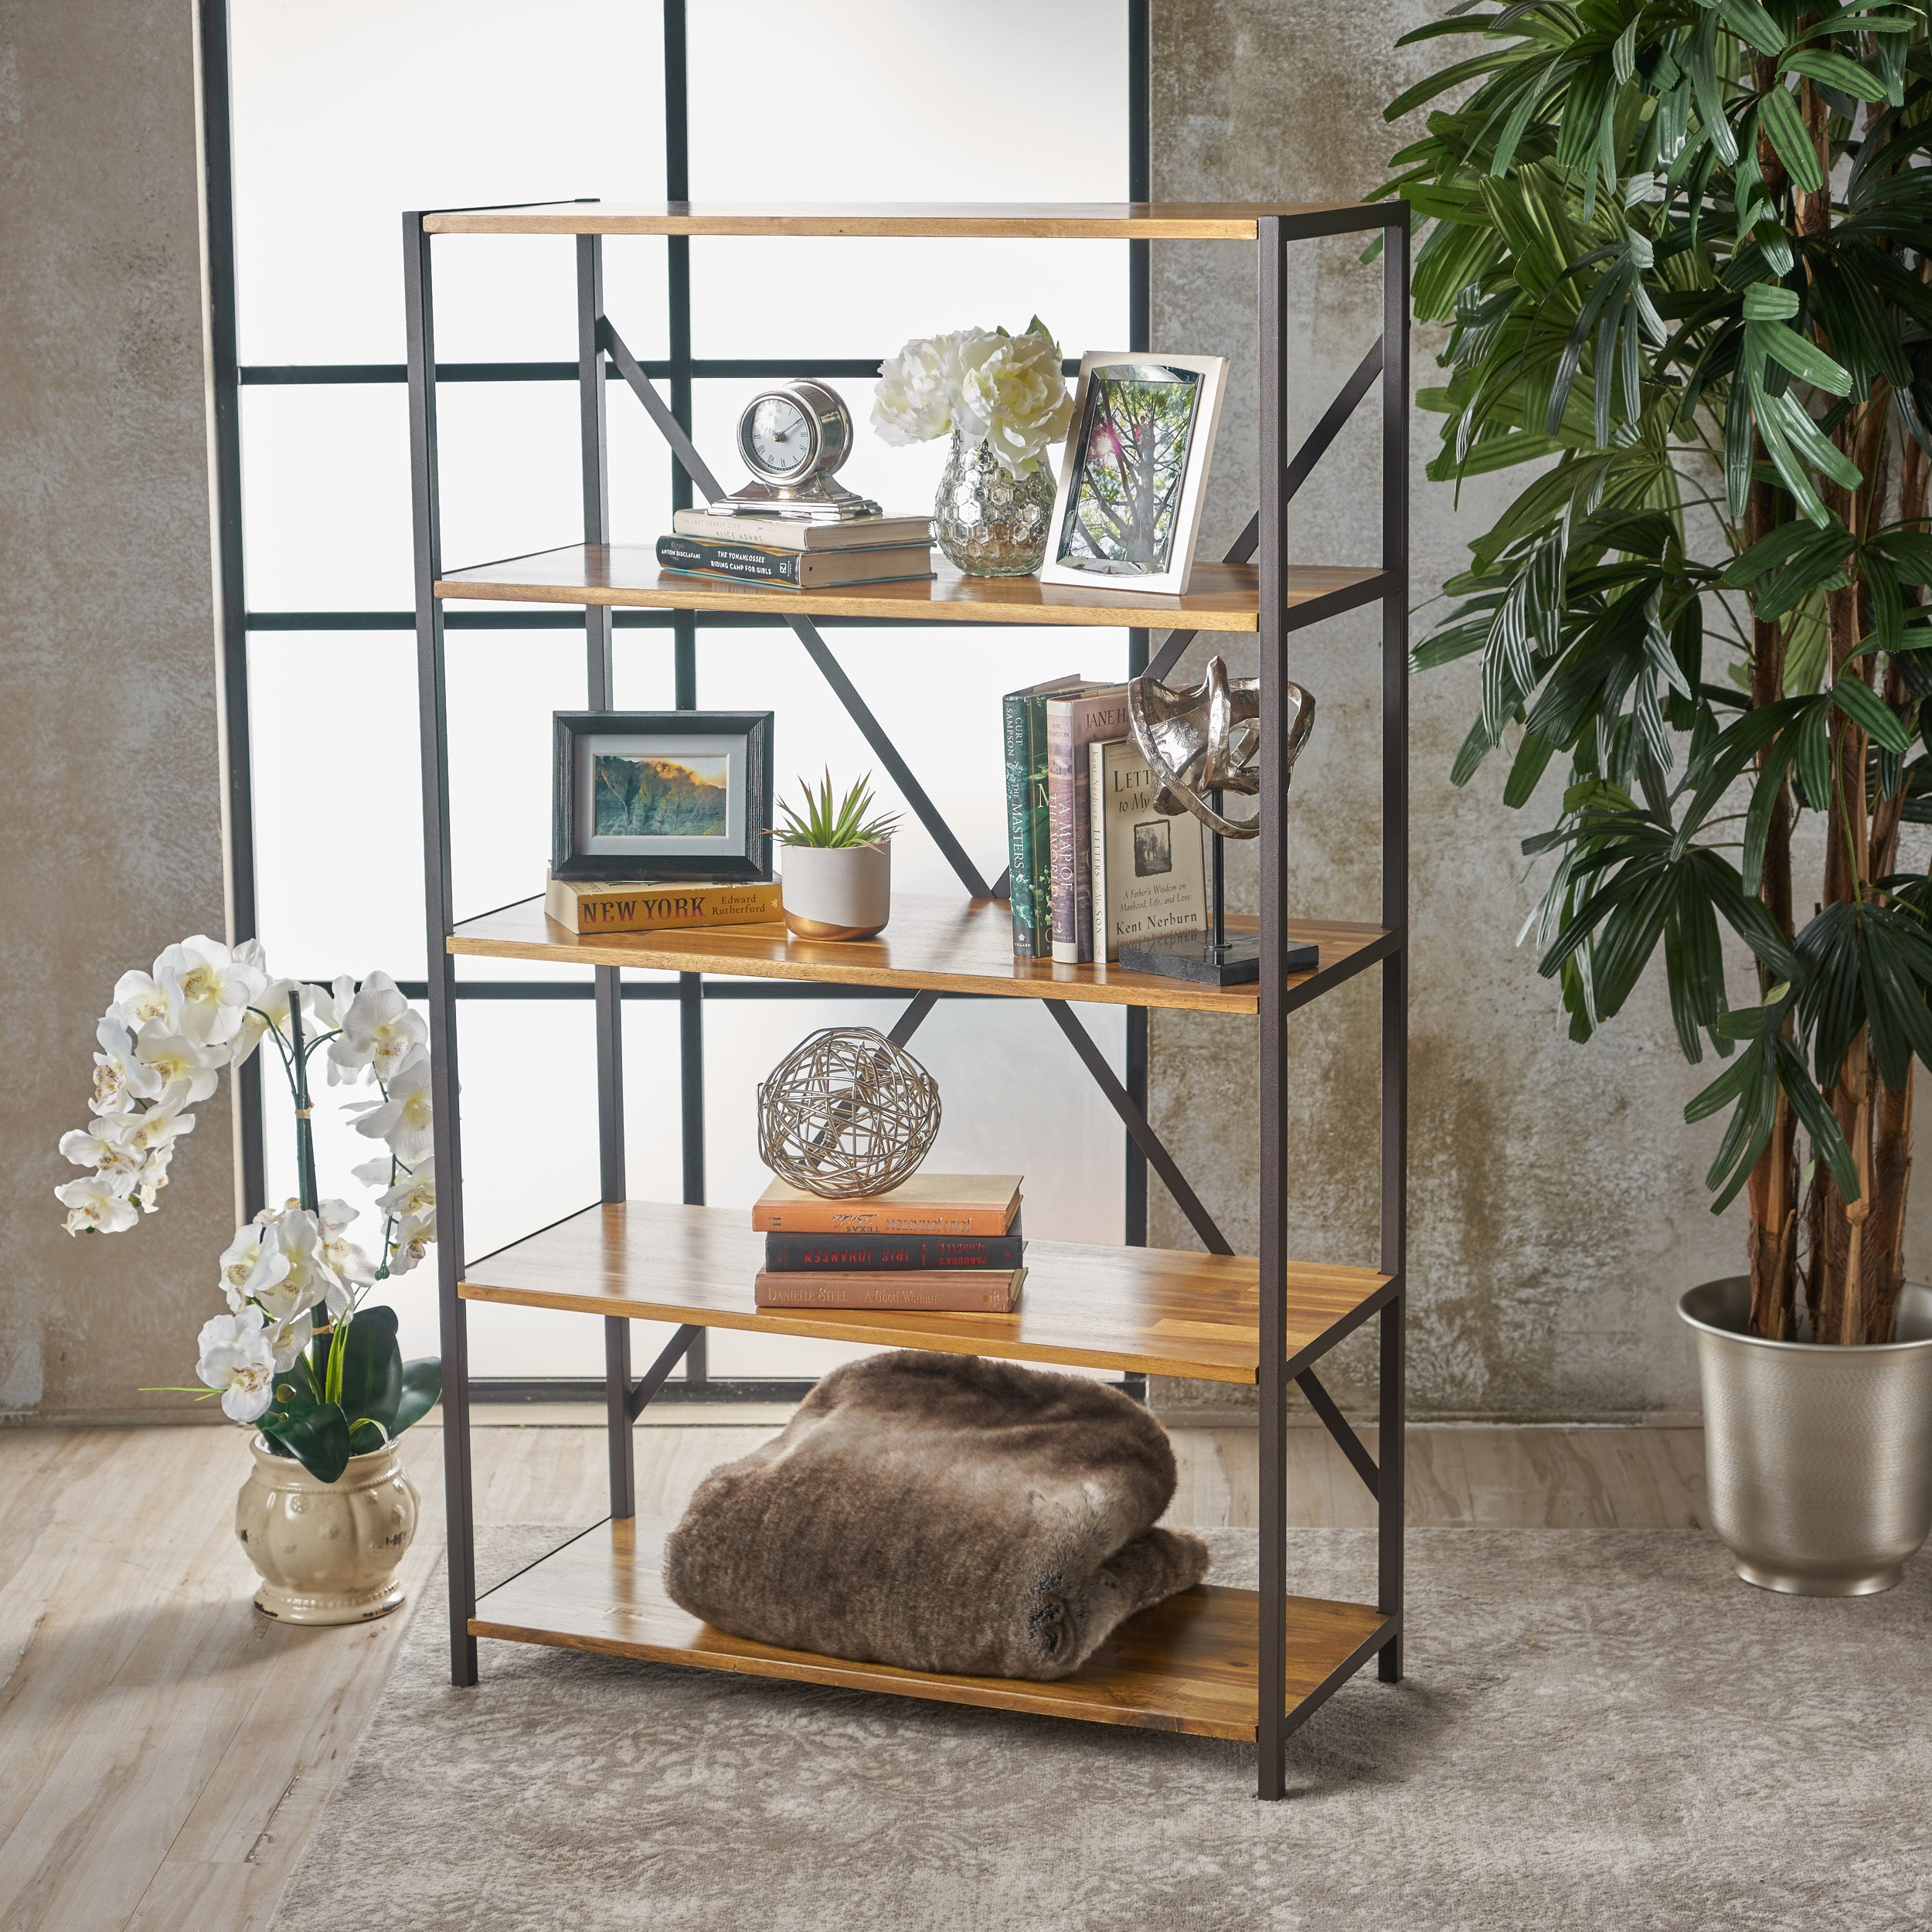 Roney Modern Industrial 4 Shelf Acacia Wood Bookcase By Christopher Knight Home 34 00 W X 14 50 D X 56 50 H